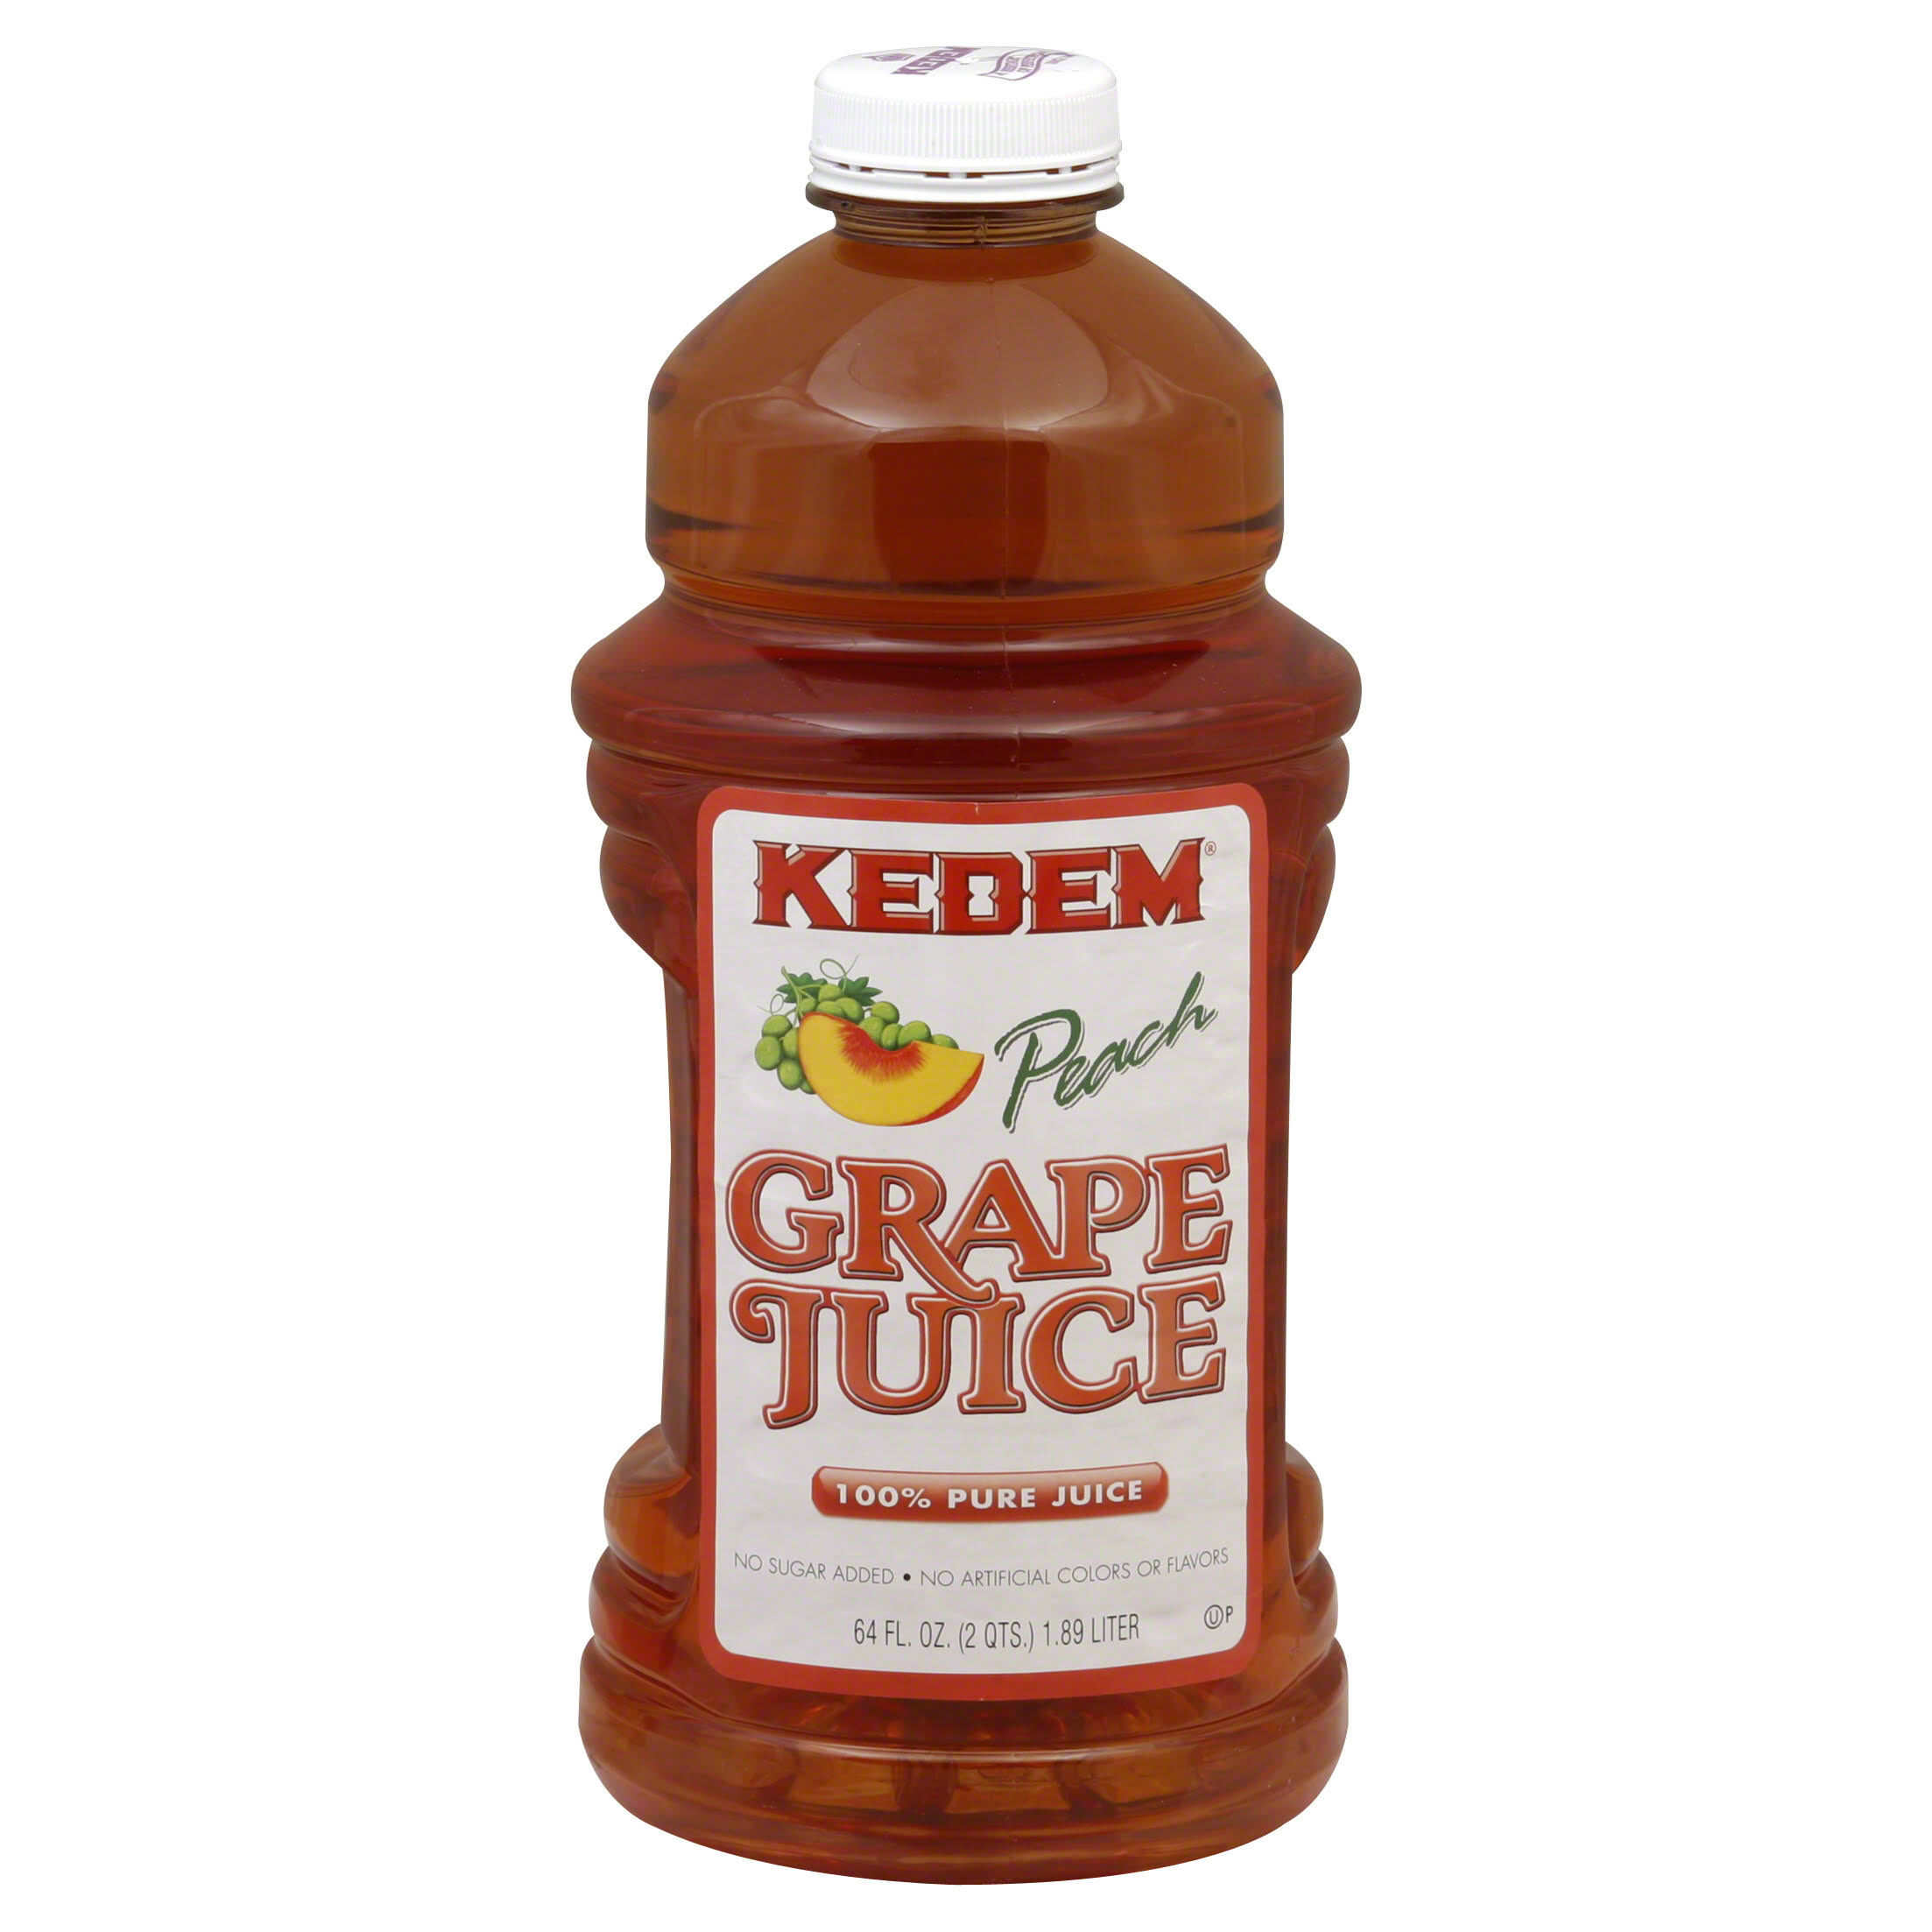 Kedem 100% Juice, Pure, Grape Peach - 64 fl oz